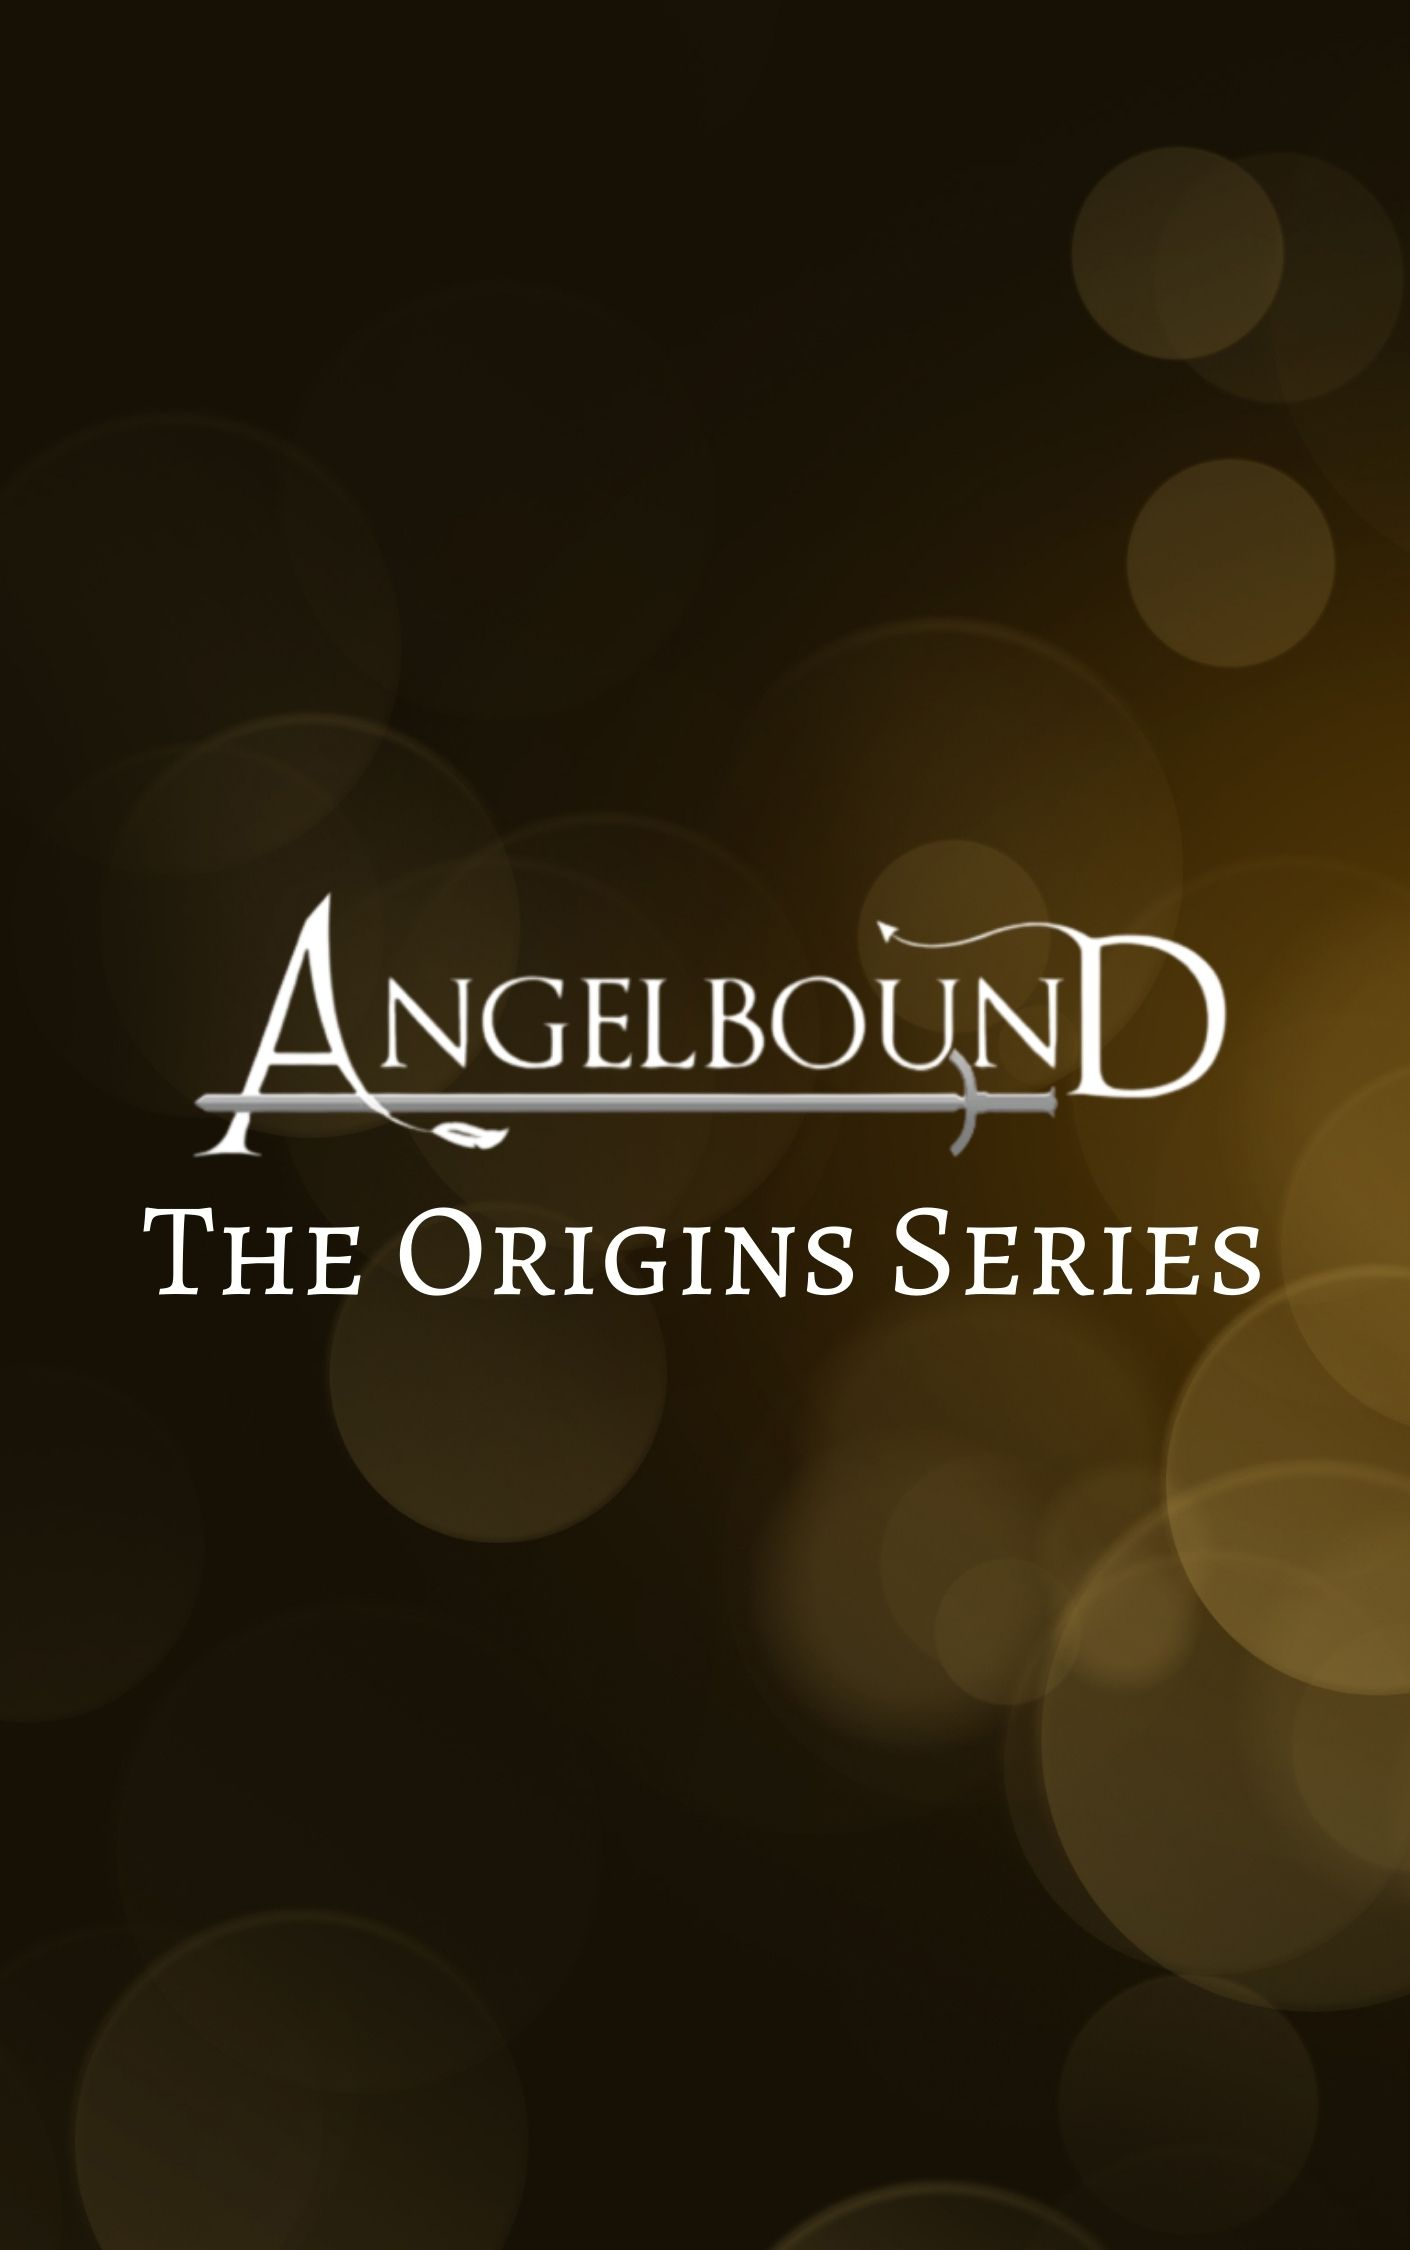 The Origins Series